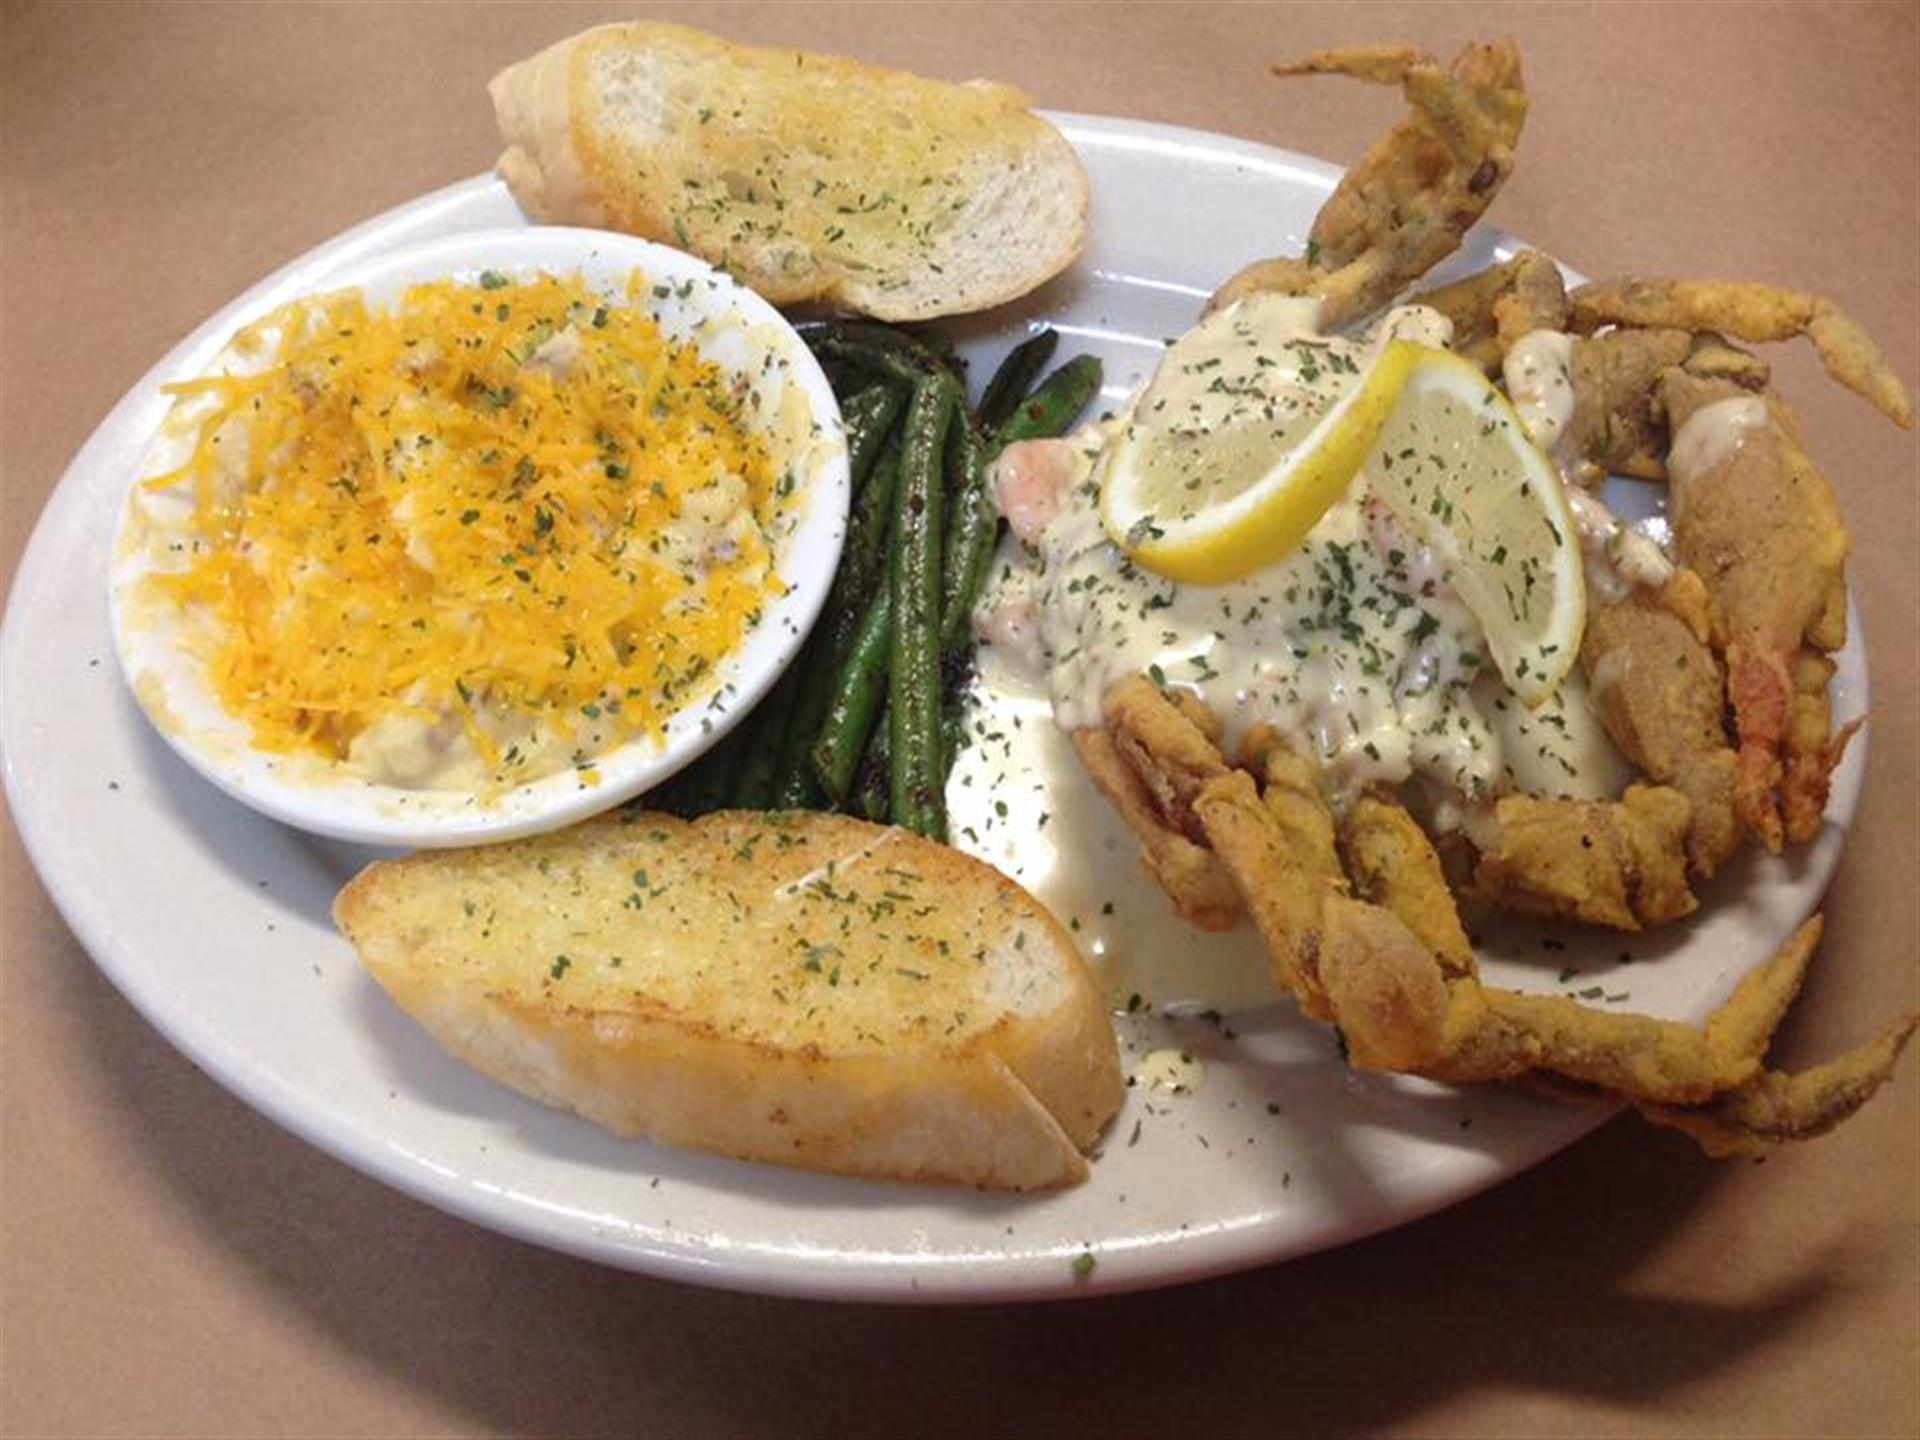 Seafood and soft shell crab with green beans and garlic toast